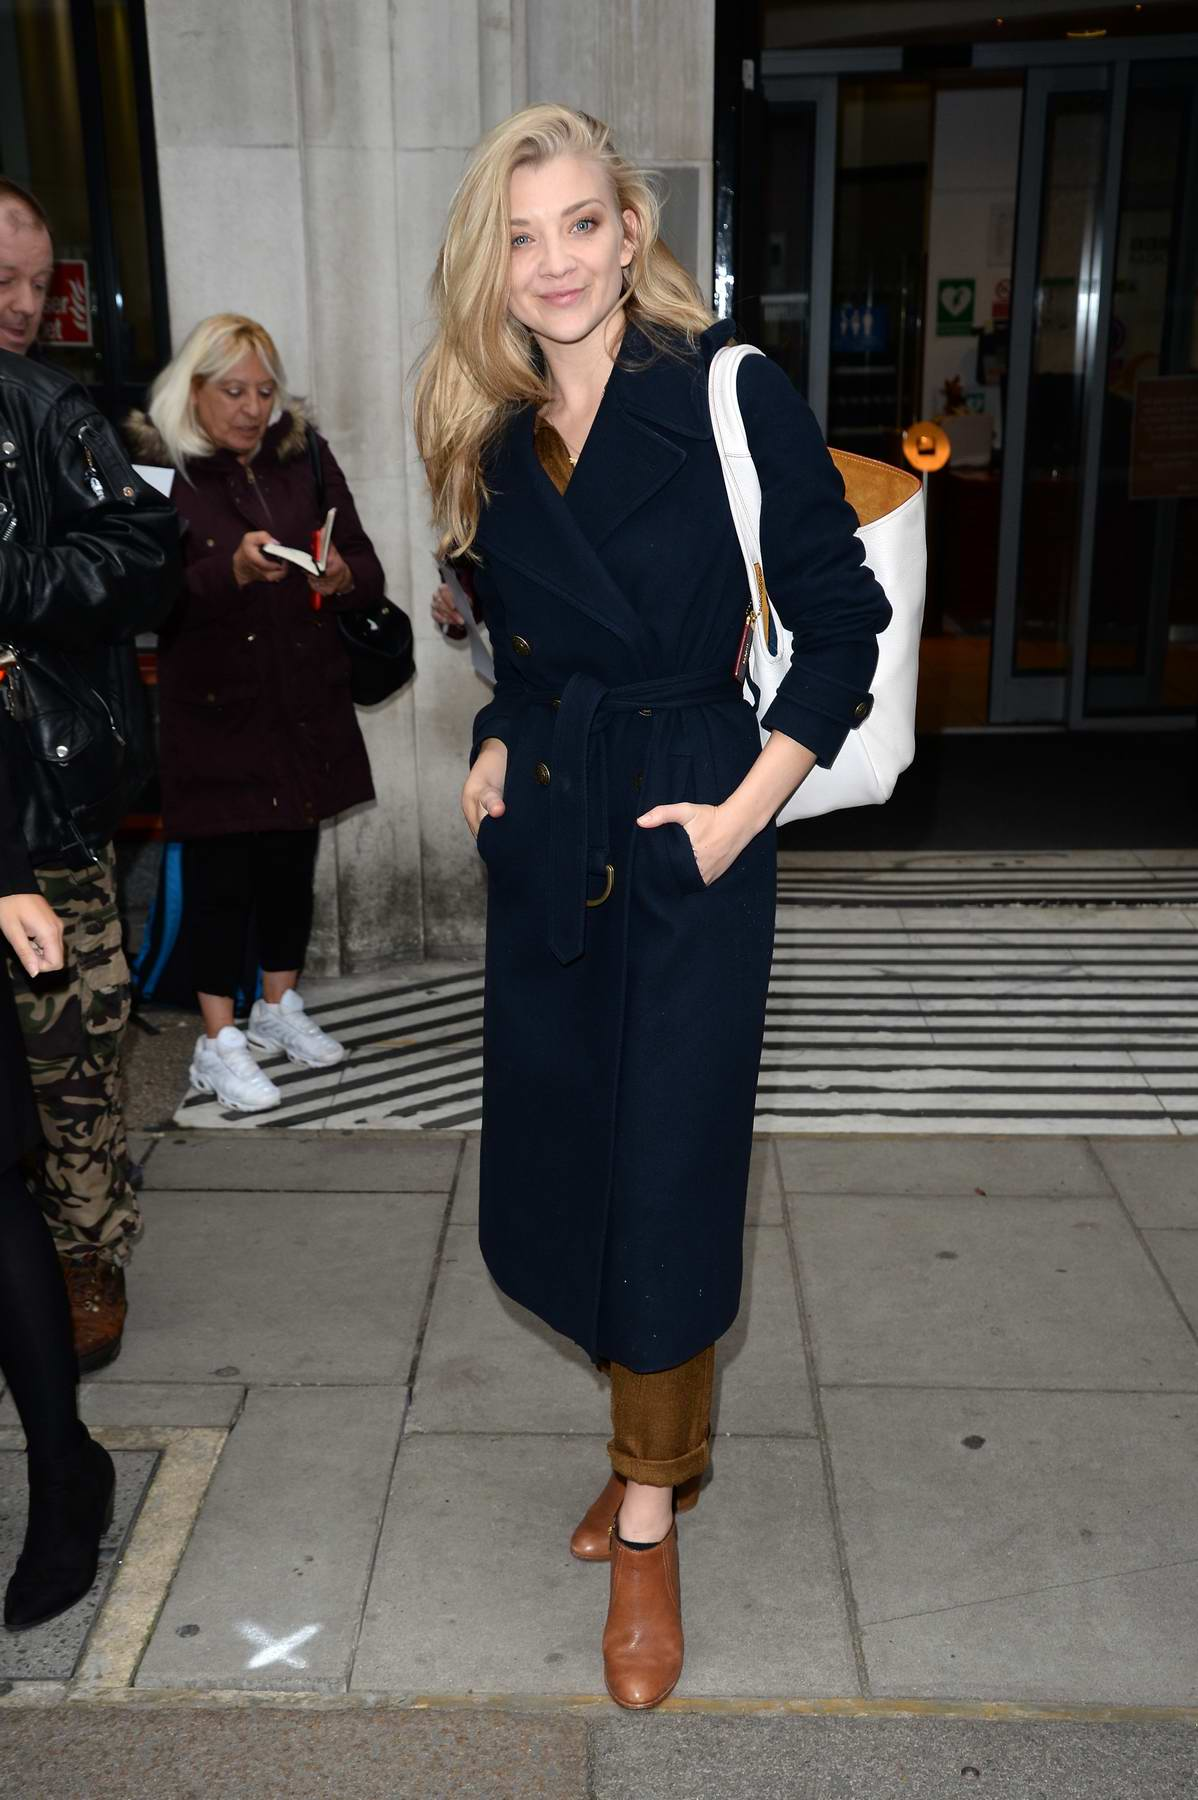 Natalie Dormer is spotted leaving BBC Radio 2 in London